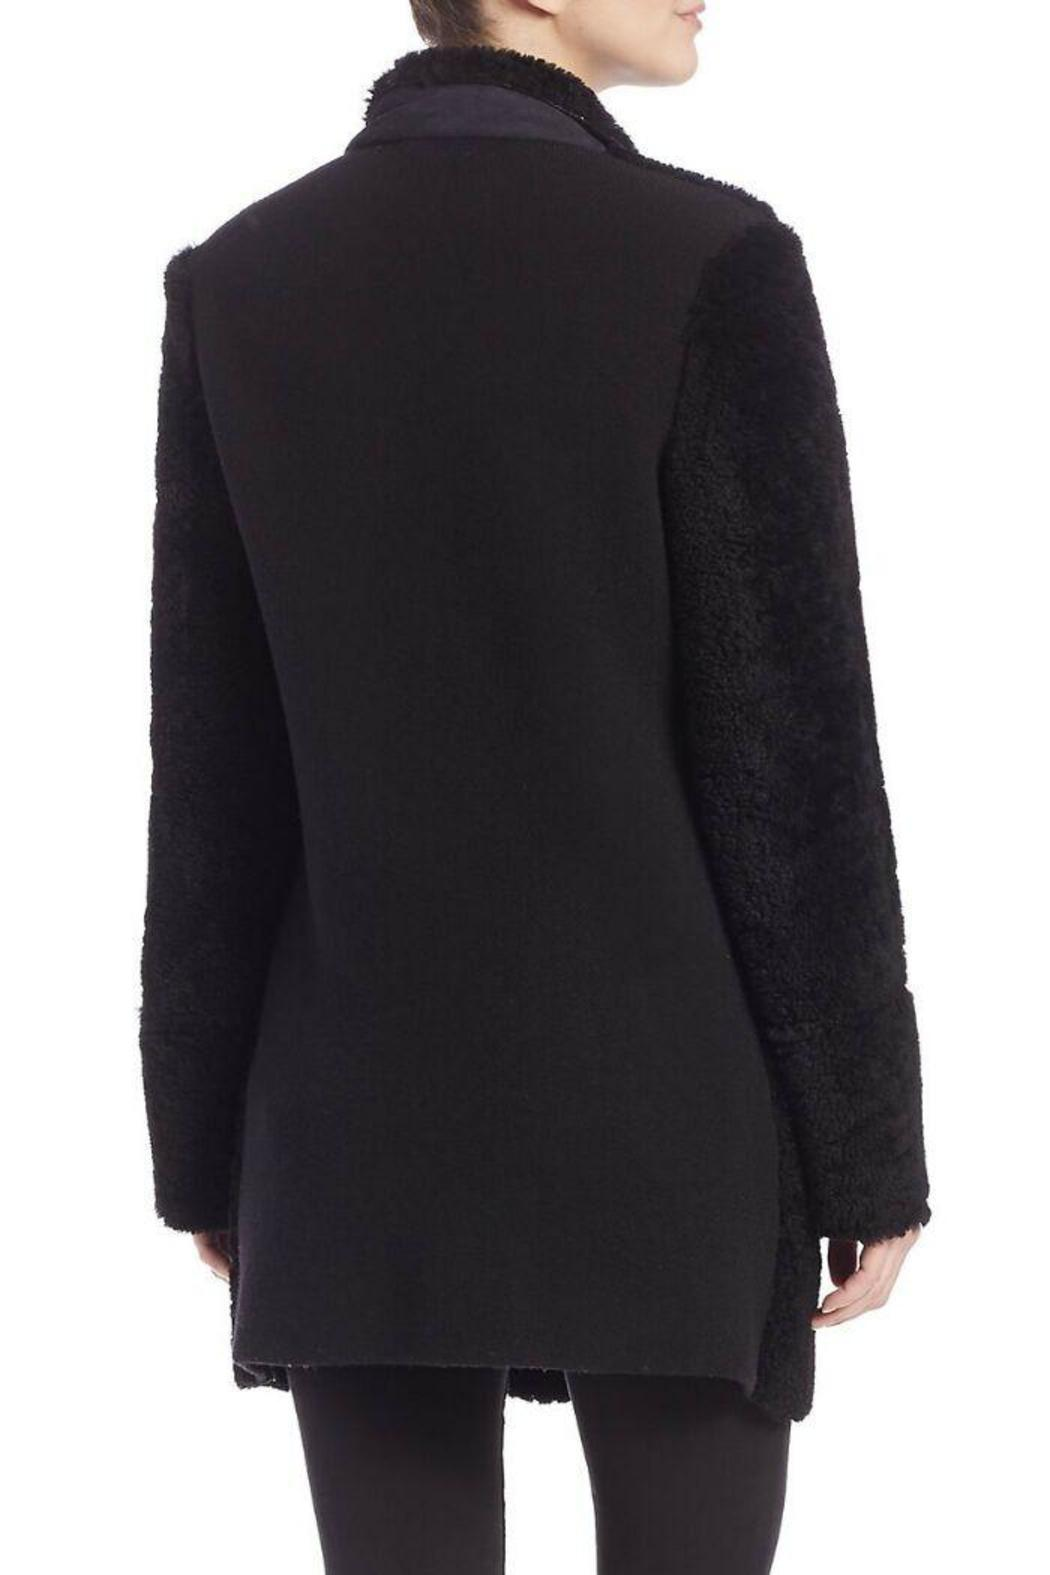 Joie Blaise Shearling Jacket - Front Full Image